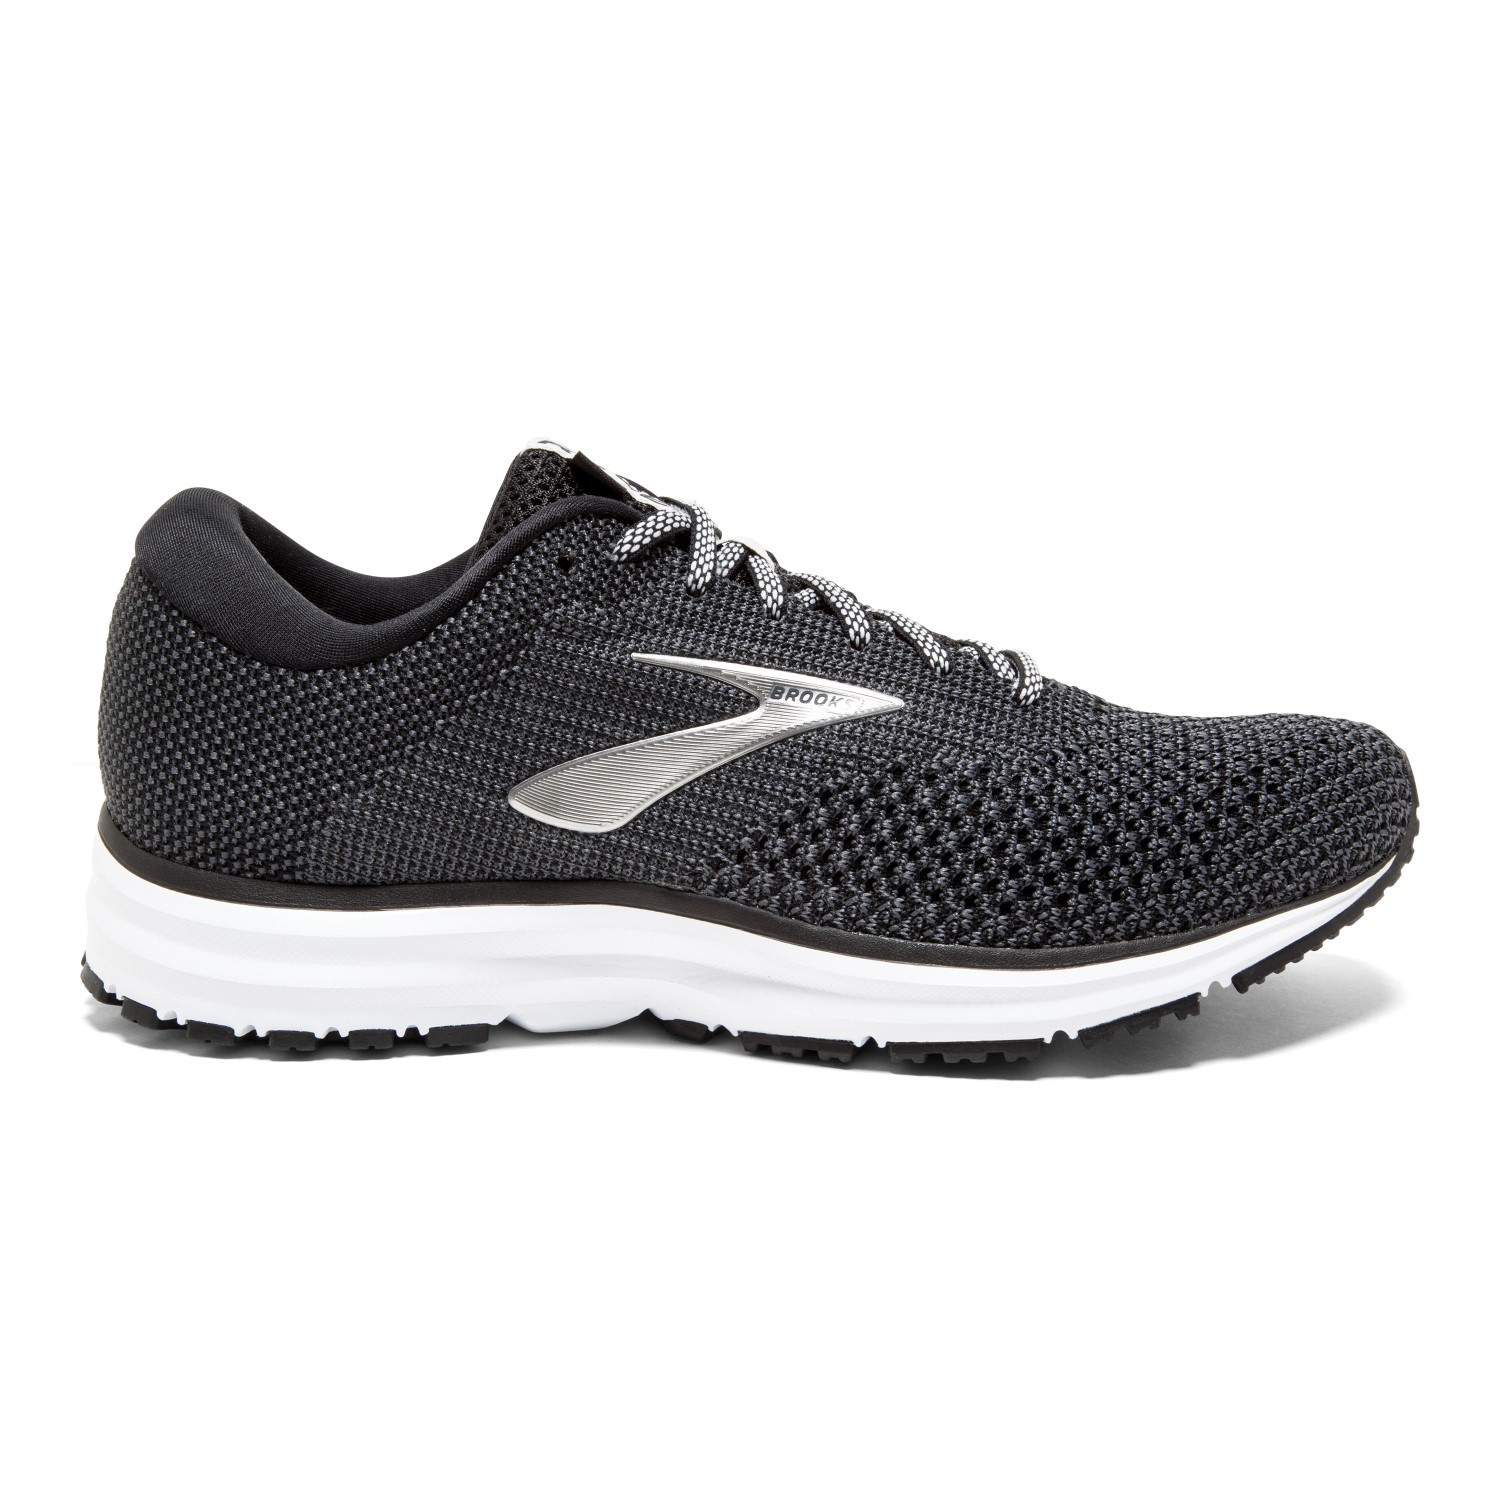 8136023ced Brooks Revel 2 - Womens Running Shoes - Black Grey